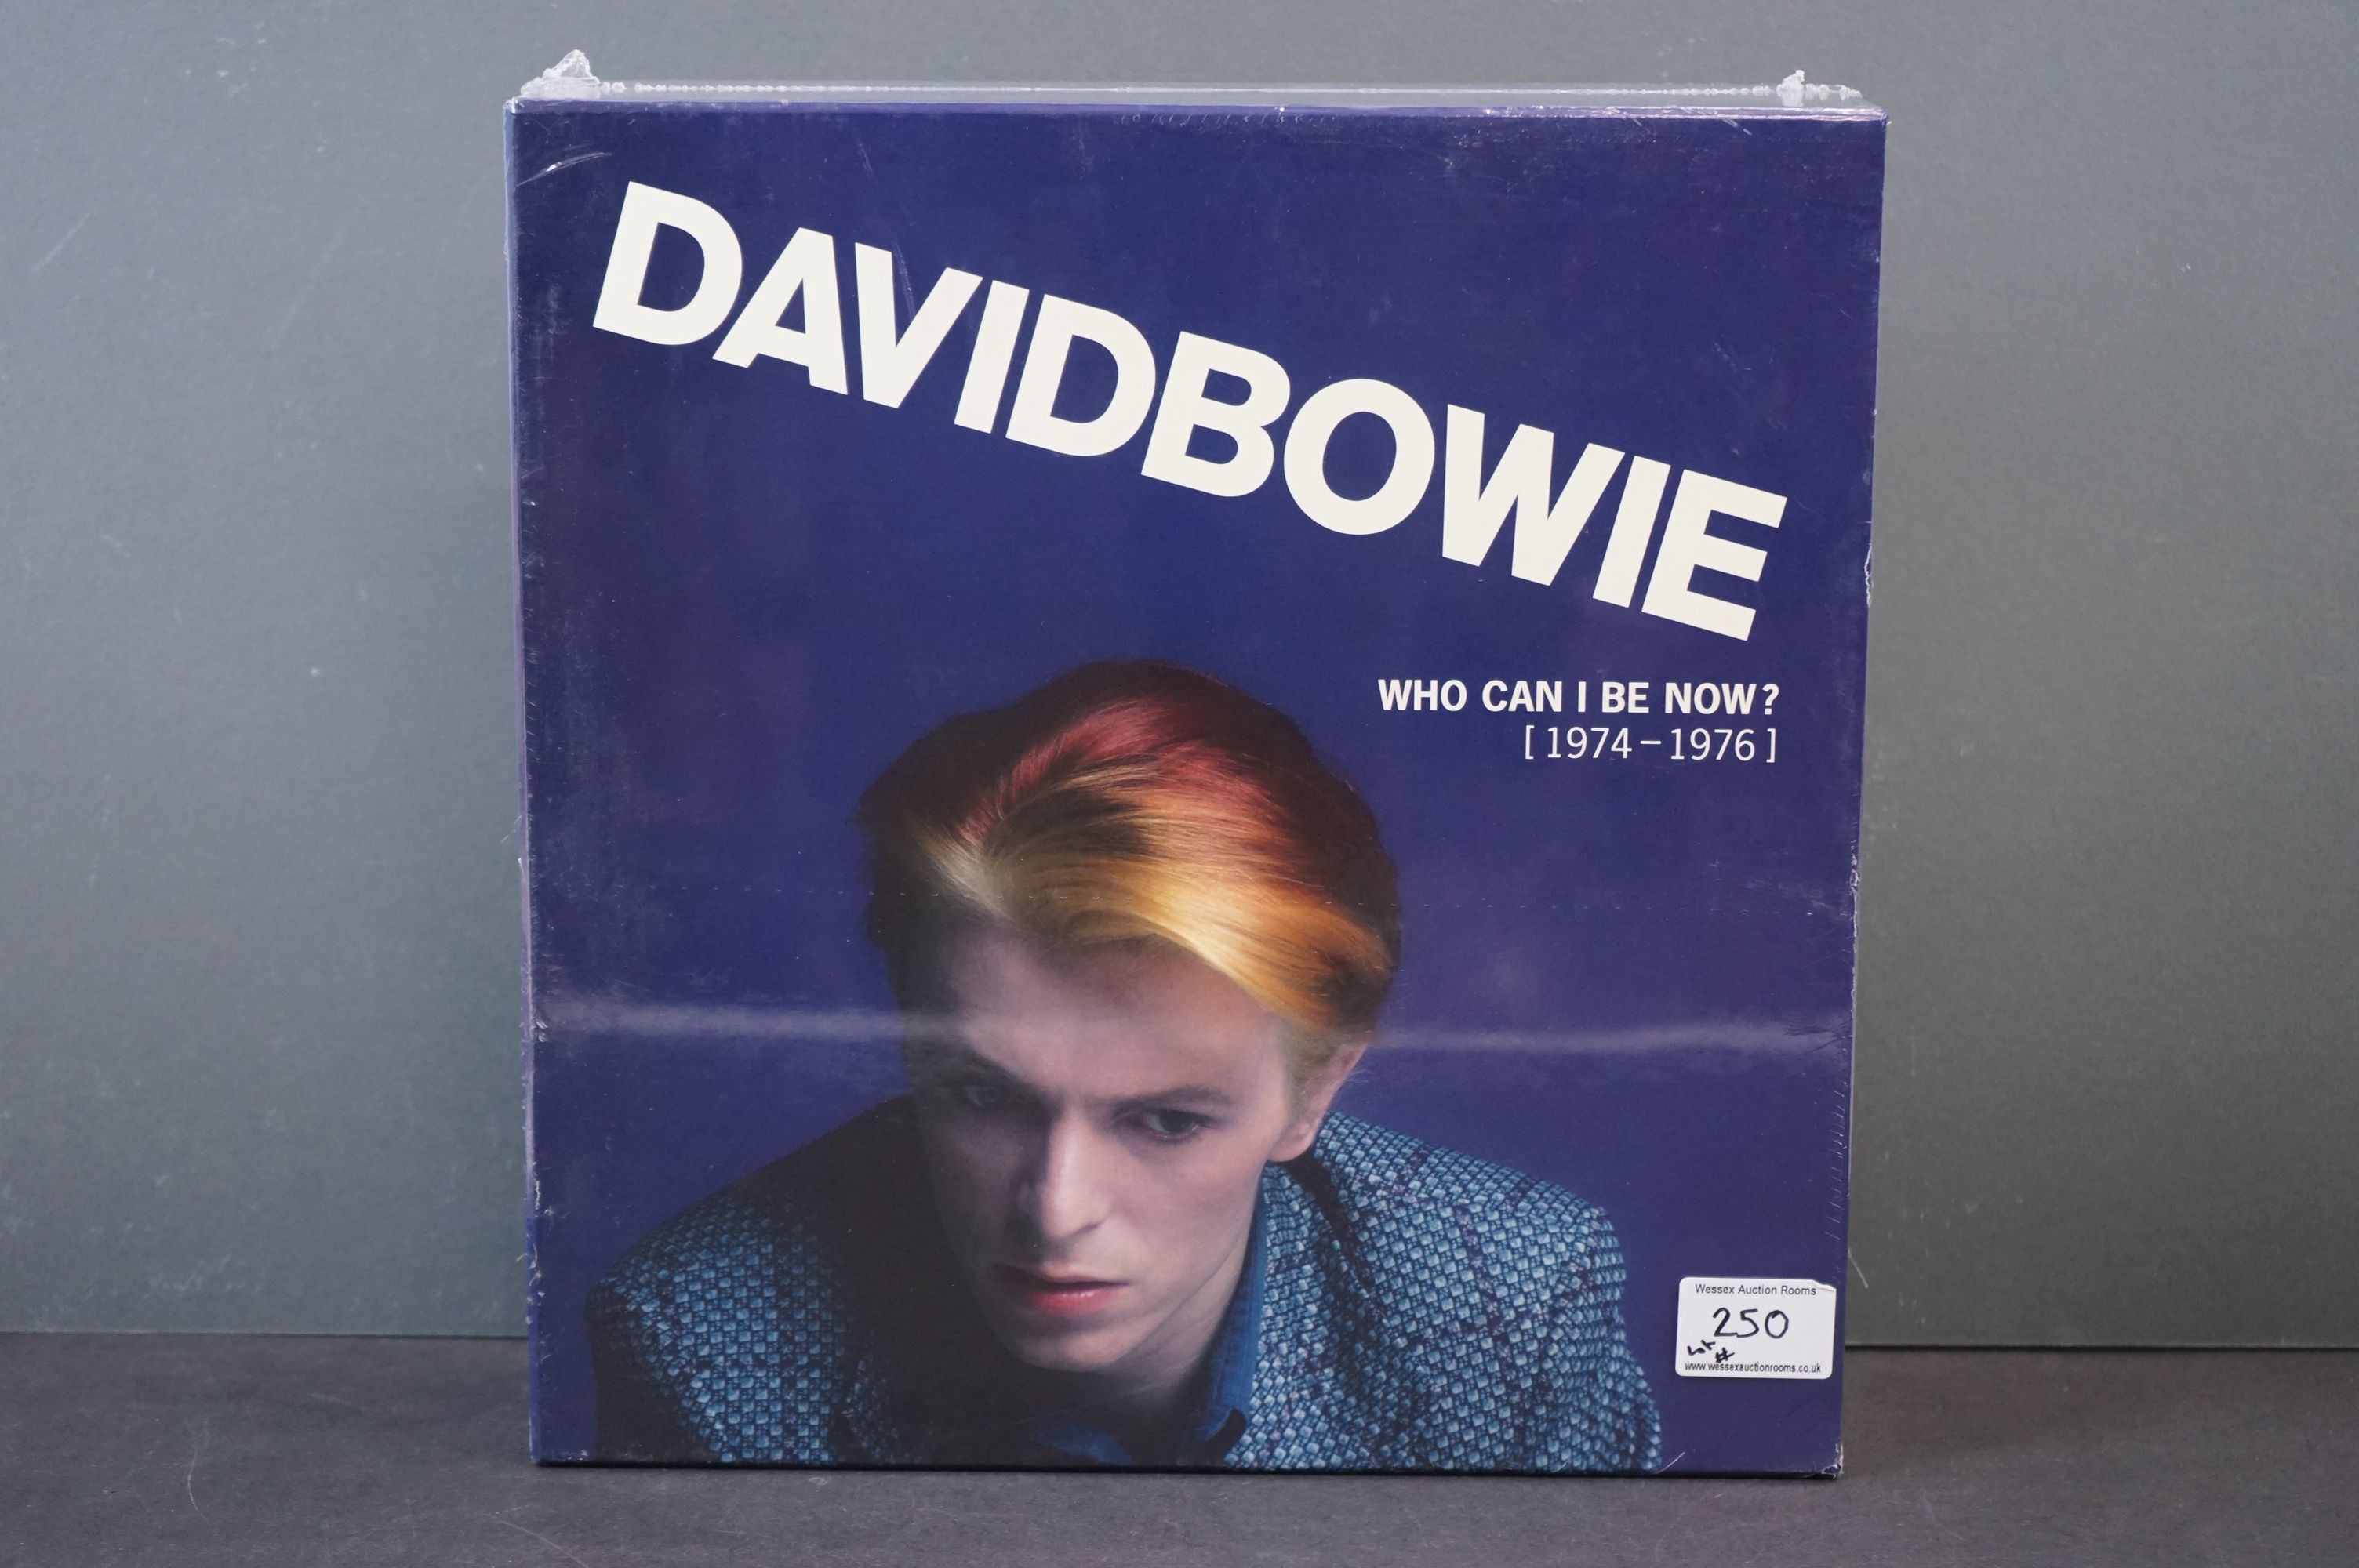 Vinyl - David Bowie Who Can I Be Now? (1974-1976) 9 LP Box Set DBXL2, sealed